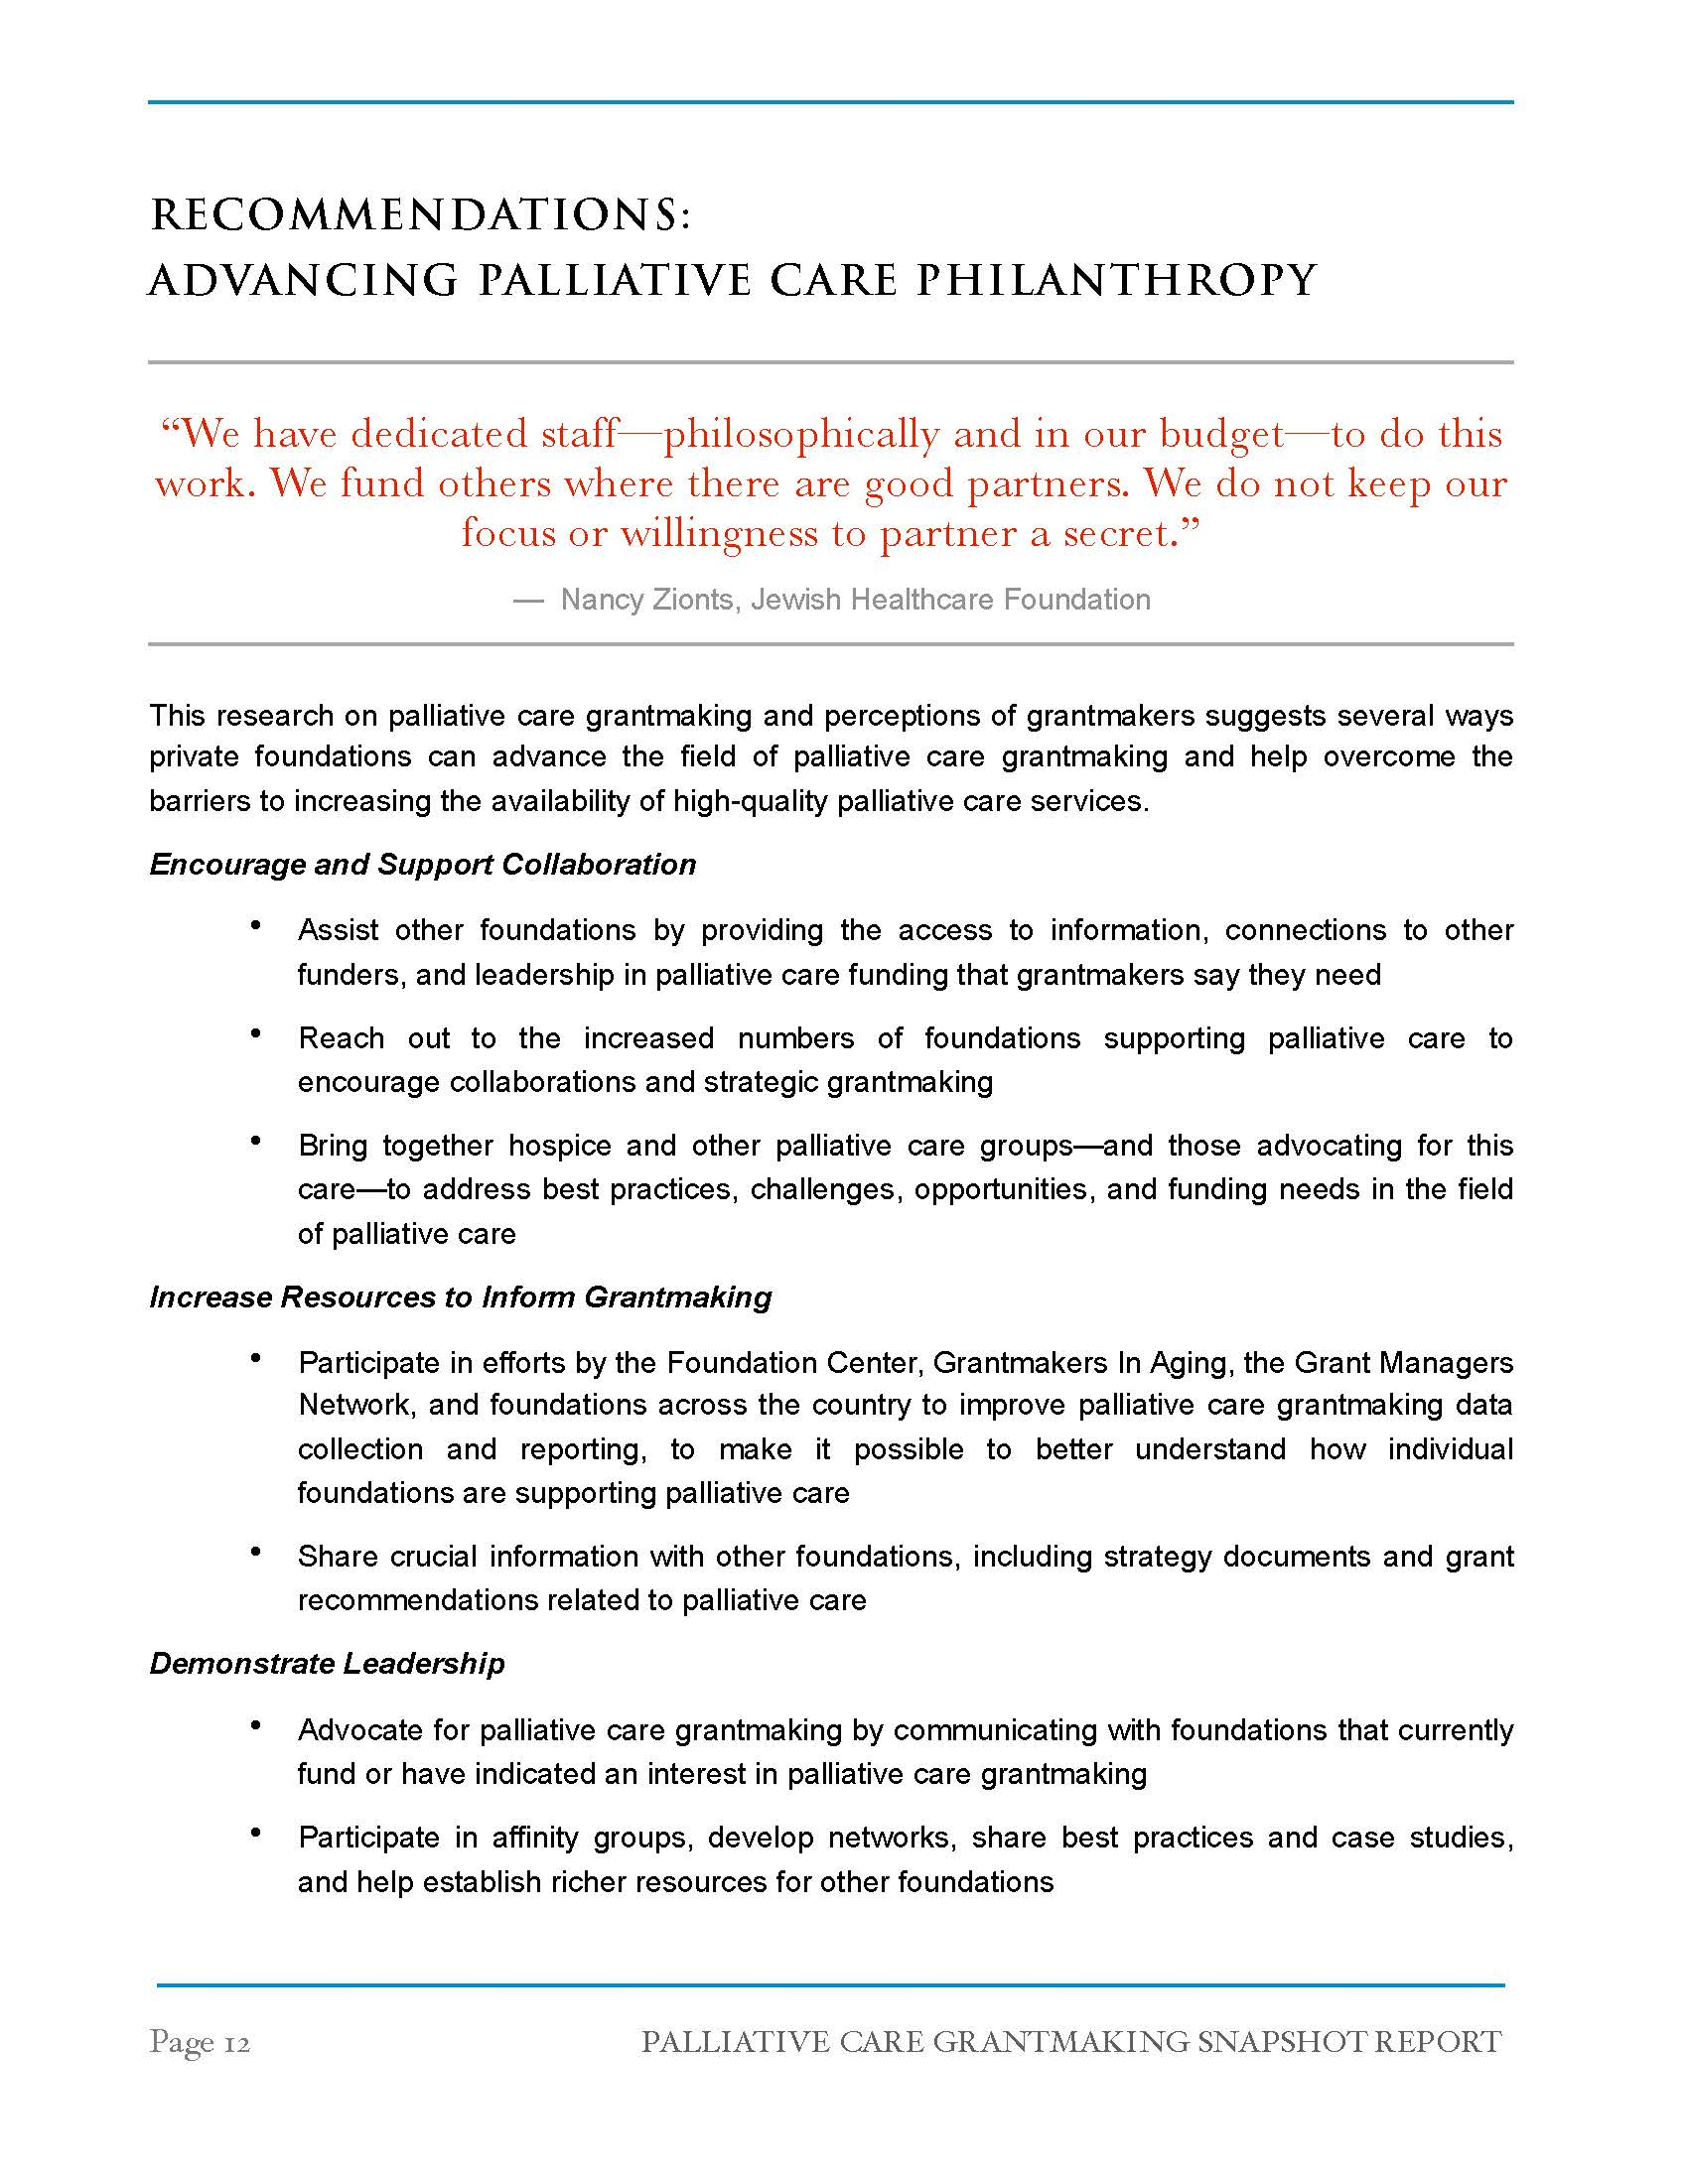 Palliative Care Grantmaking Snapshot Report_Page_14.jpg